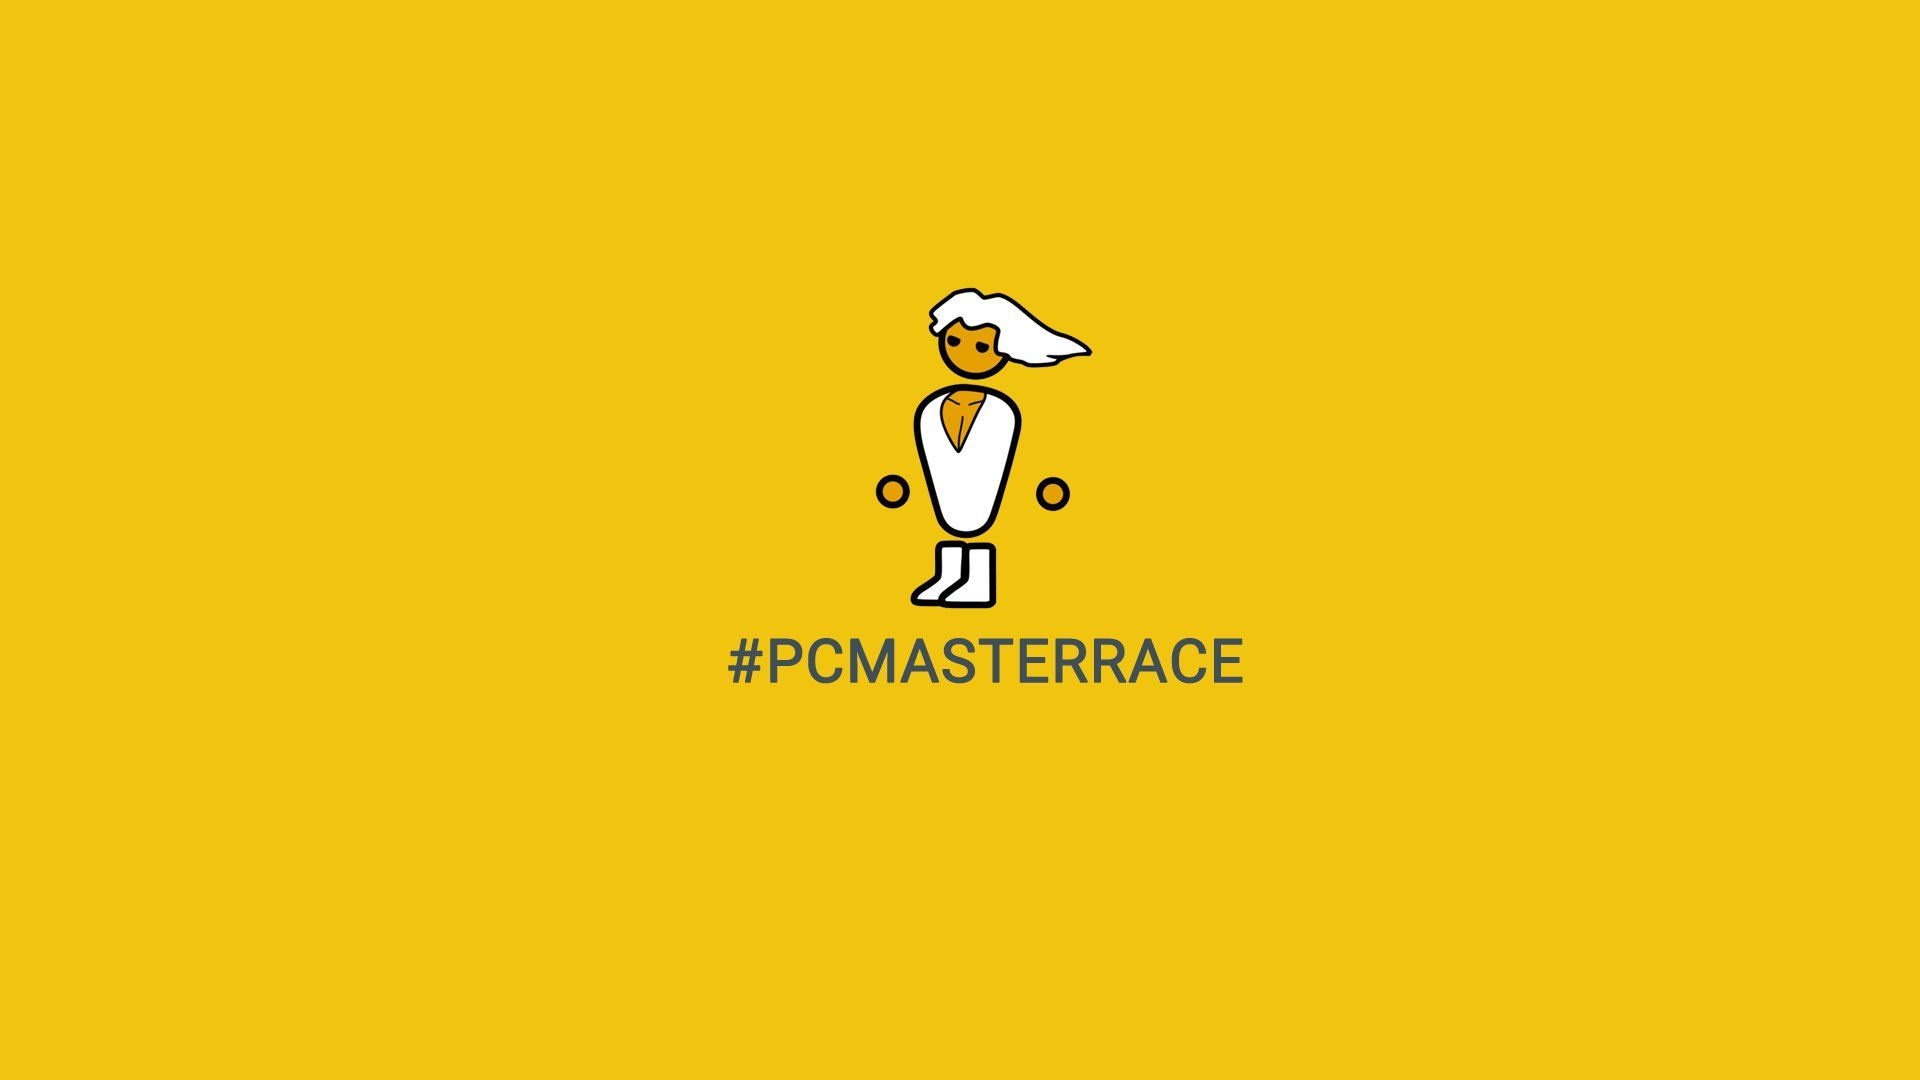 Simple Pcmasterrace Wallpaper In 1920x1080 Resolution